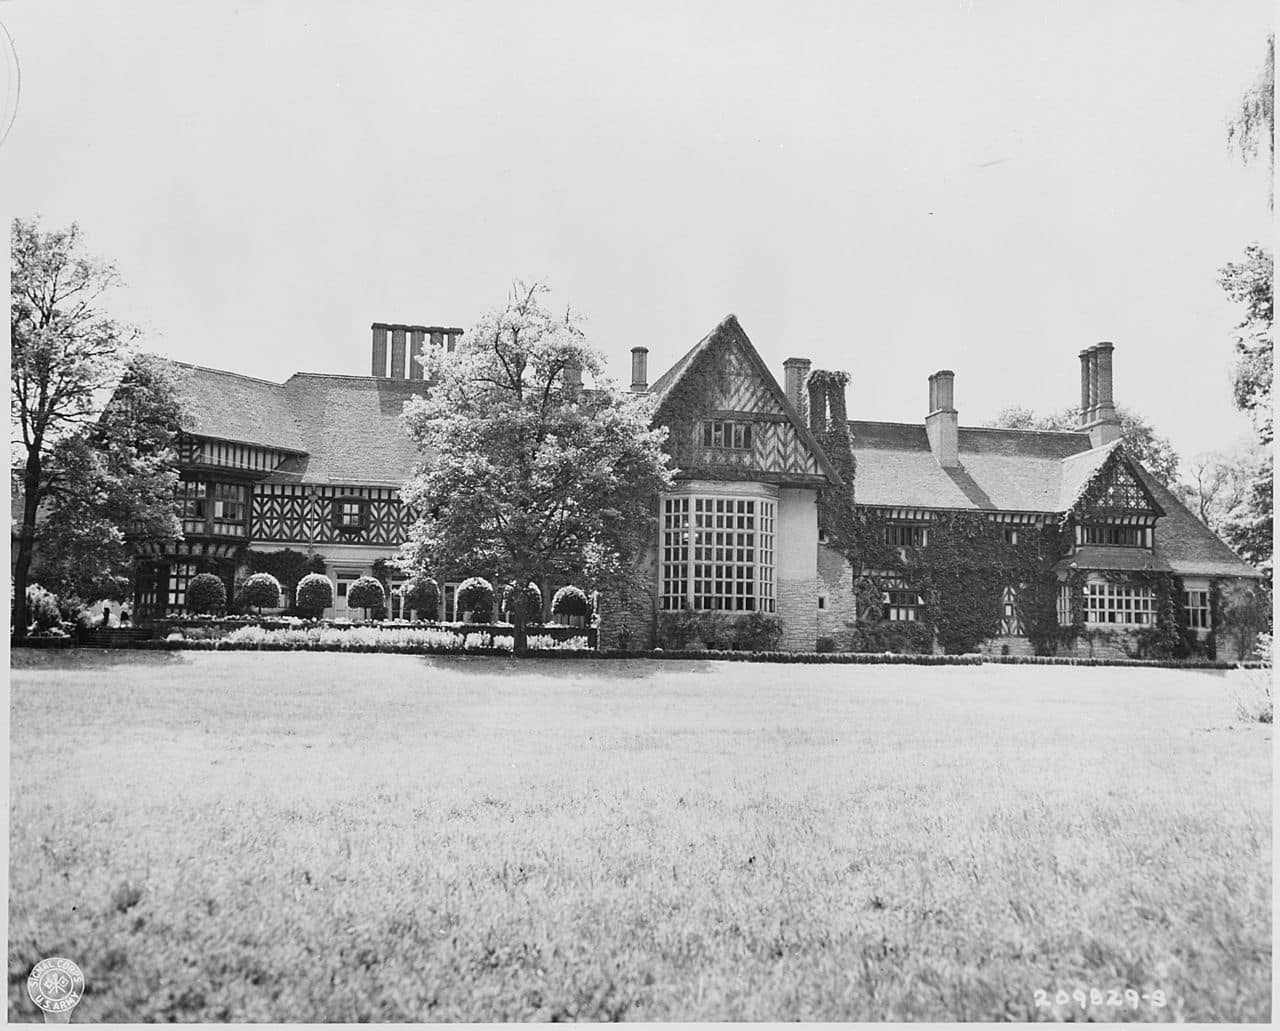 The Potsdam Conference - July 23rd 1945 - Schloss Cecilienhof as viewed from the river Havel side of the palace